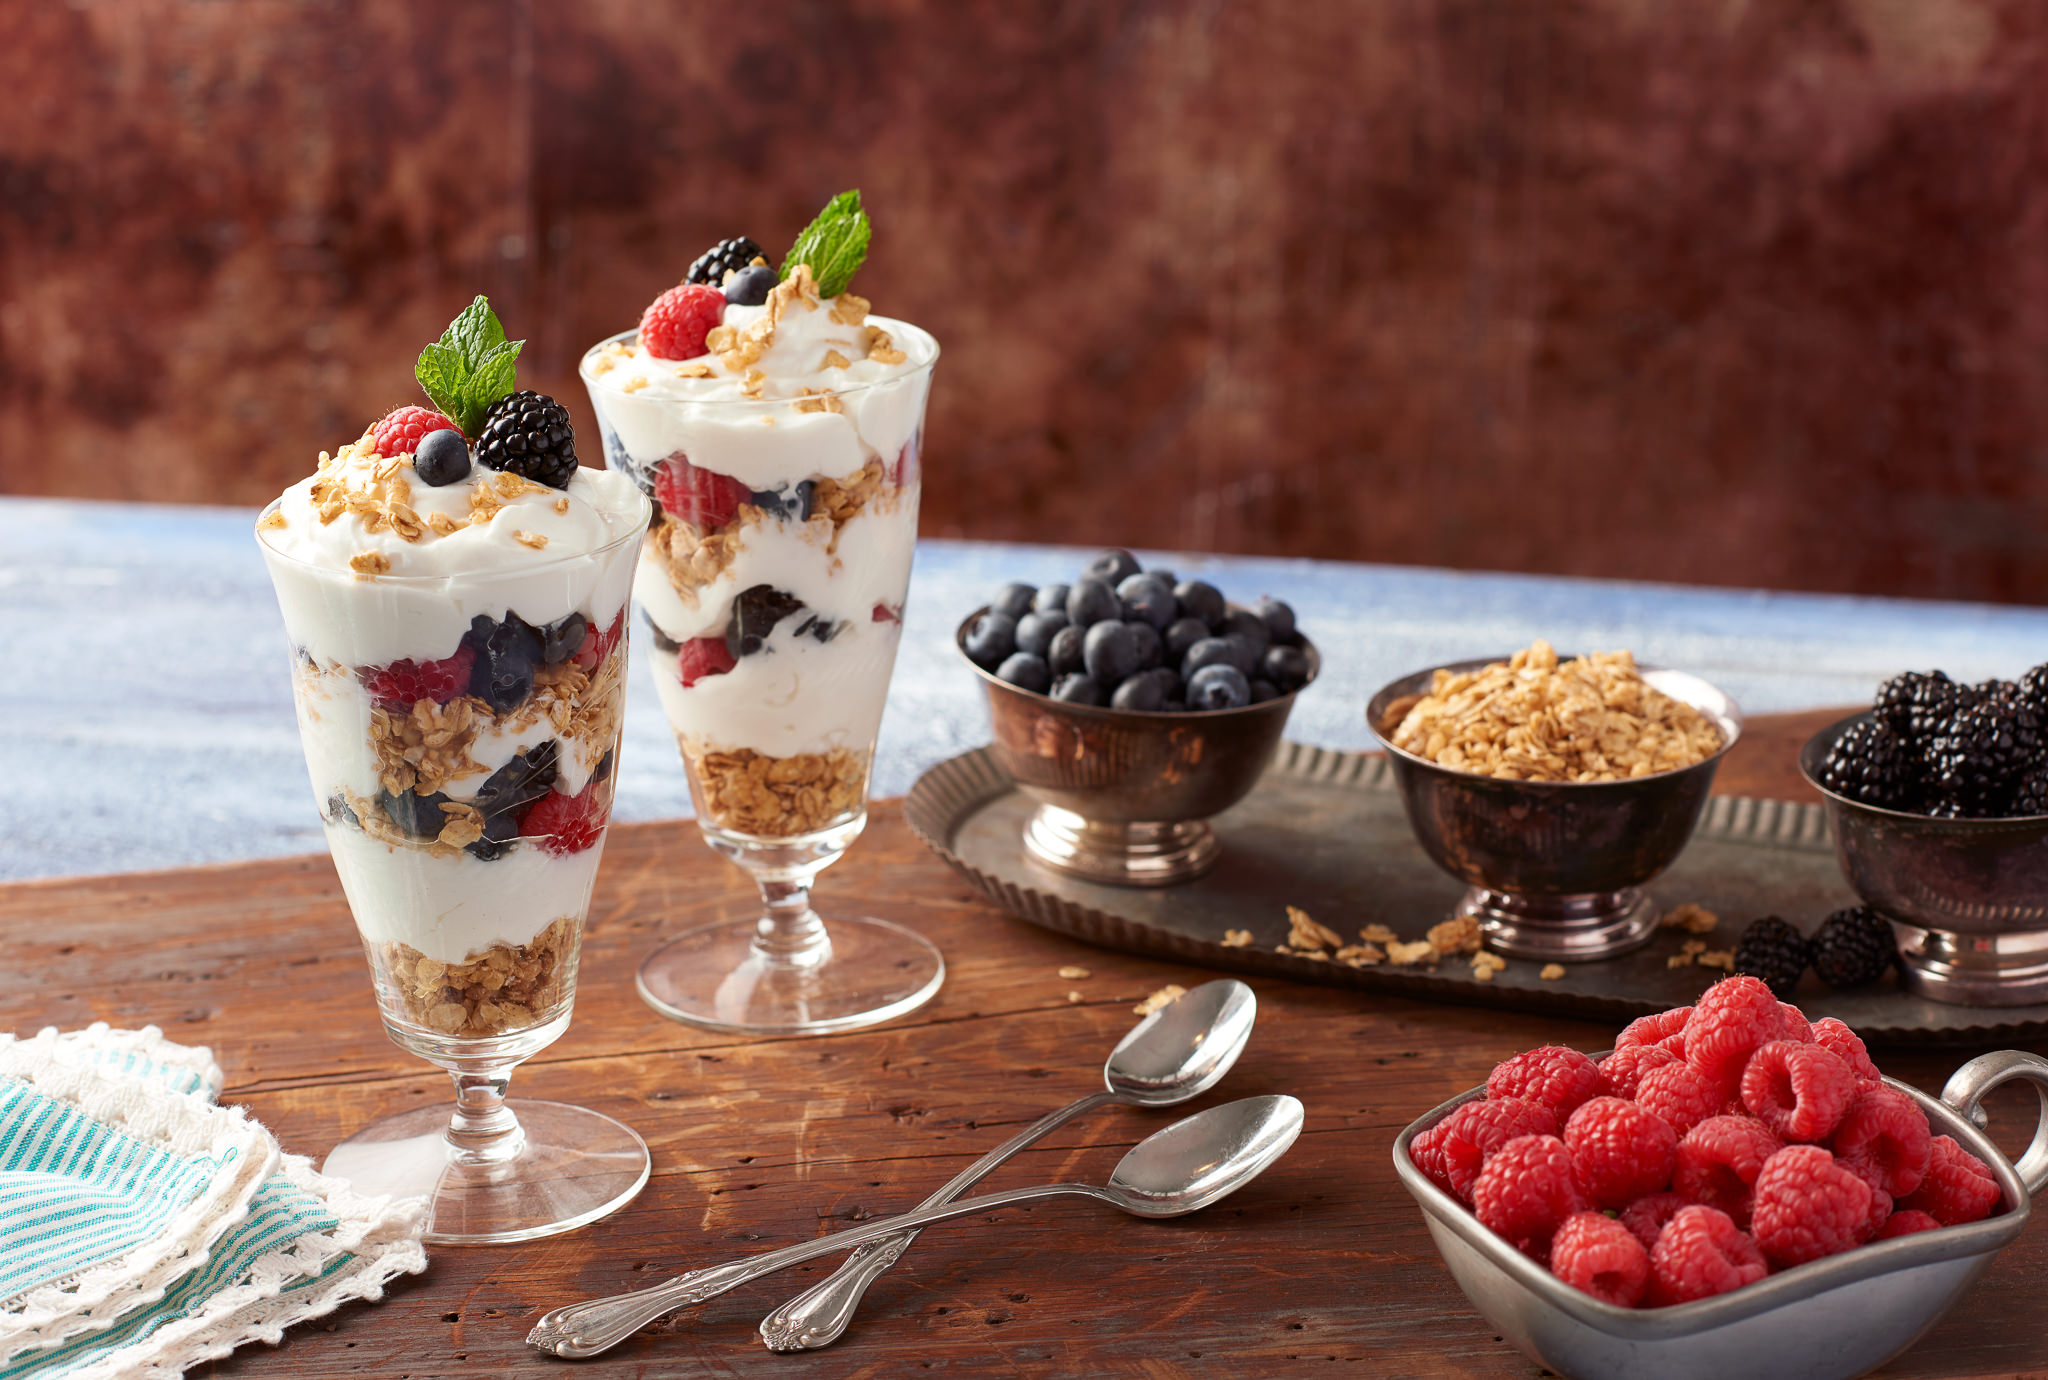 Raspberry Blueberry Yogurt Parfait Food Photography for Publix Supermarkets Photography by Nick Pecori Tampa Commercial Advertising Photographer-6.jpg